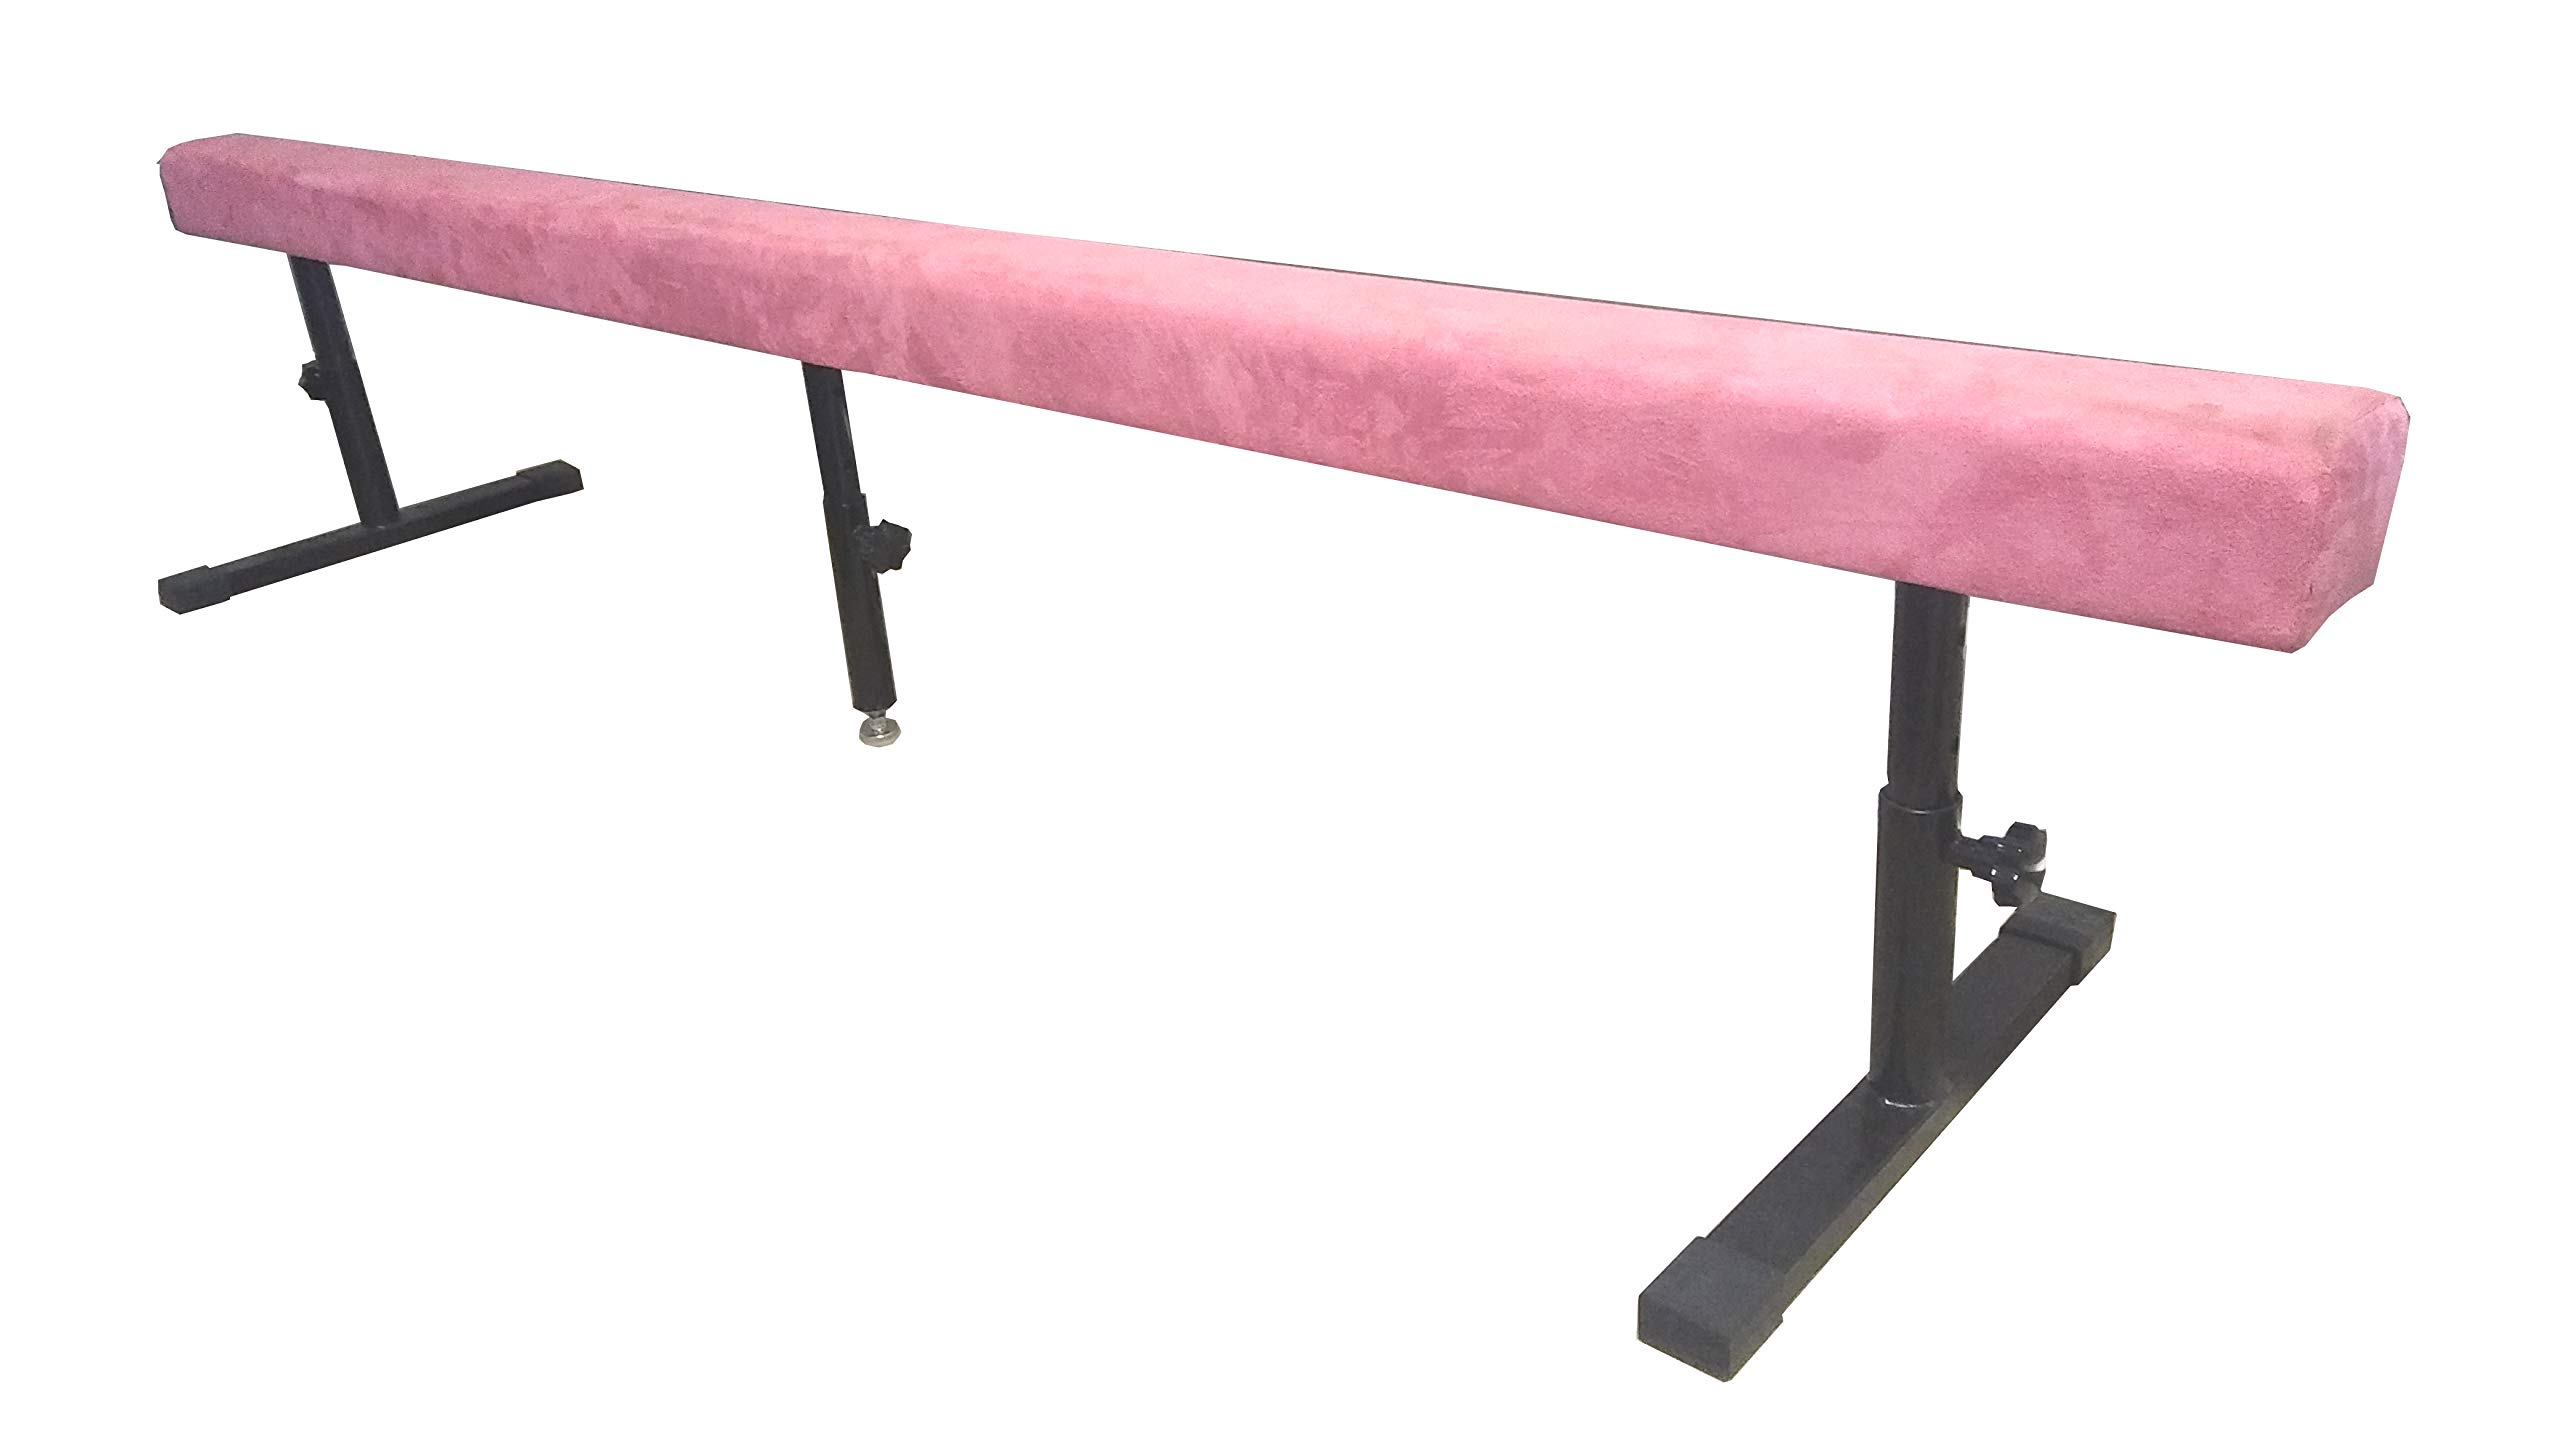 Gymnastics Balance Beam. 4', 8', Risers. 6 Option to Choose from (Heavy Duty 8 ft Beam with 3 risers.)